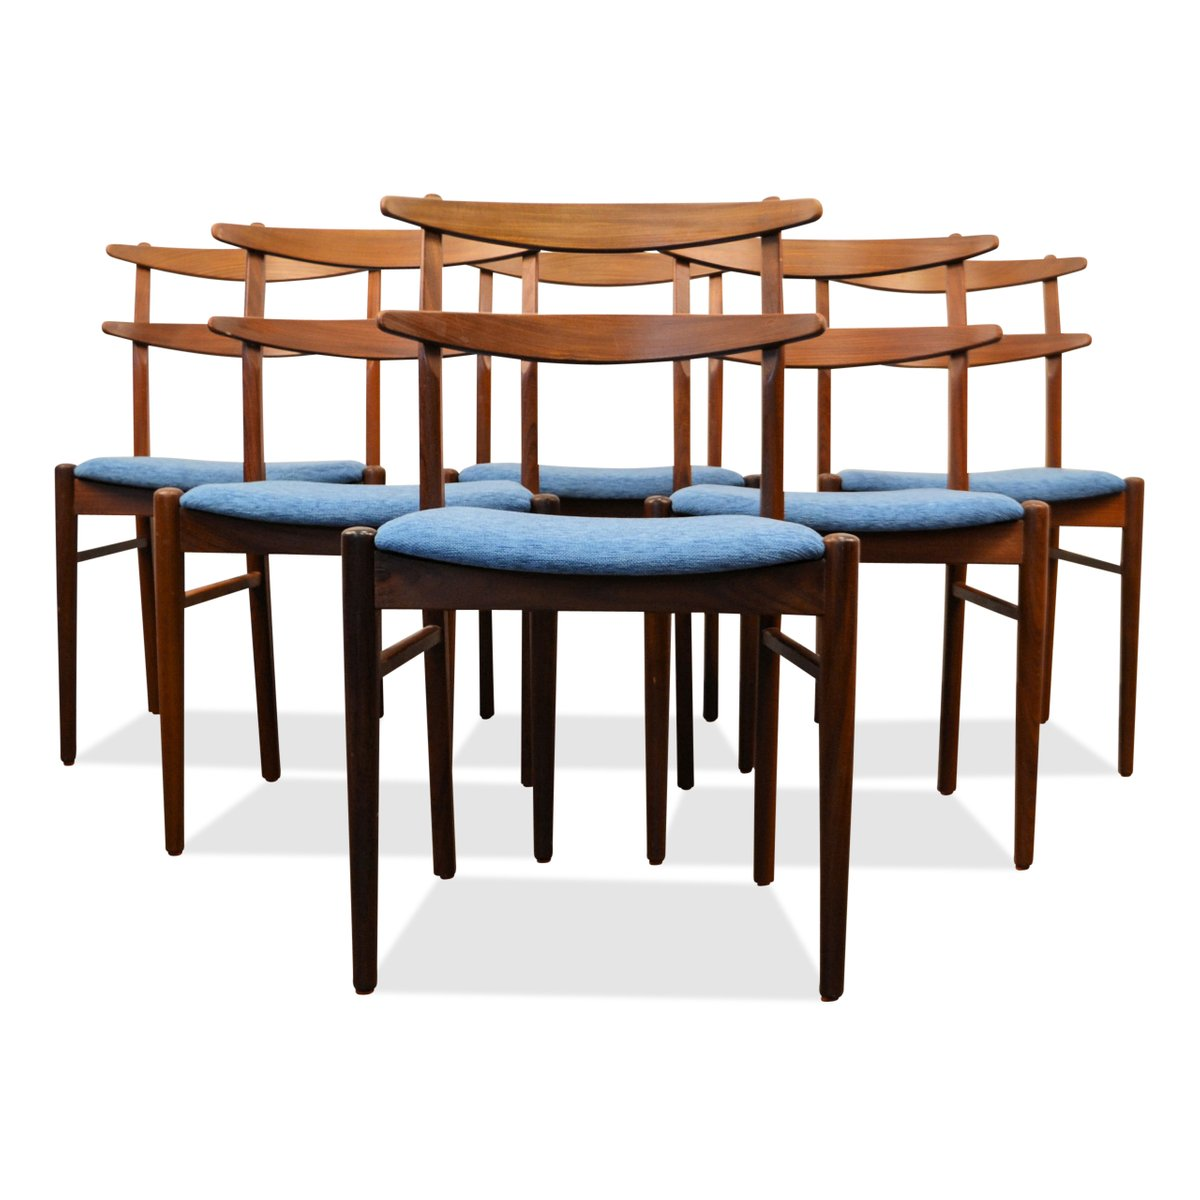 Danish teak dining chairs 1960s set of 6 for sale at pamono for Set of 6 dining chairs